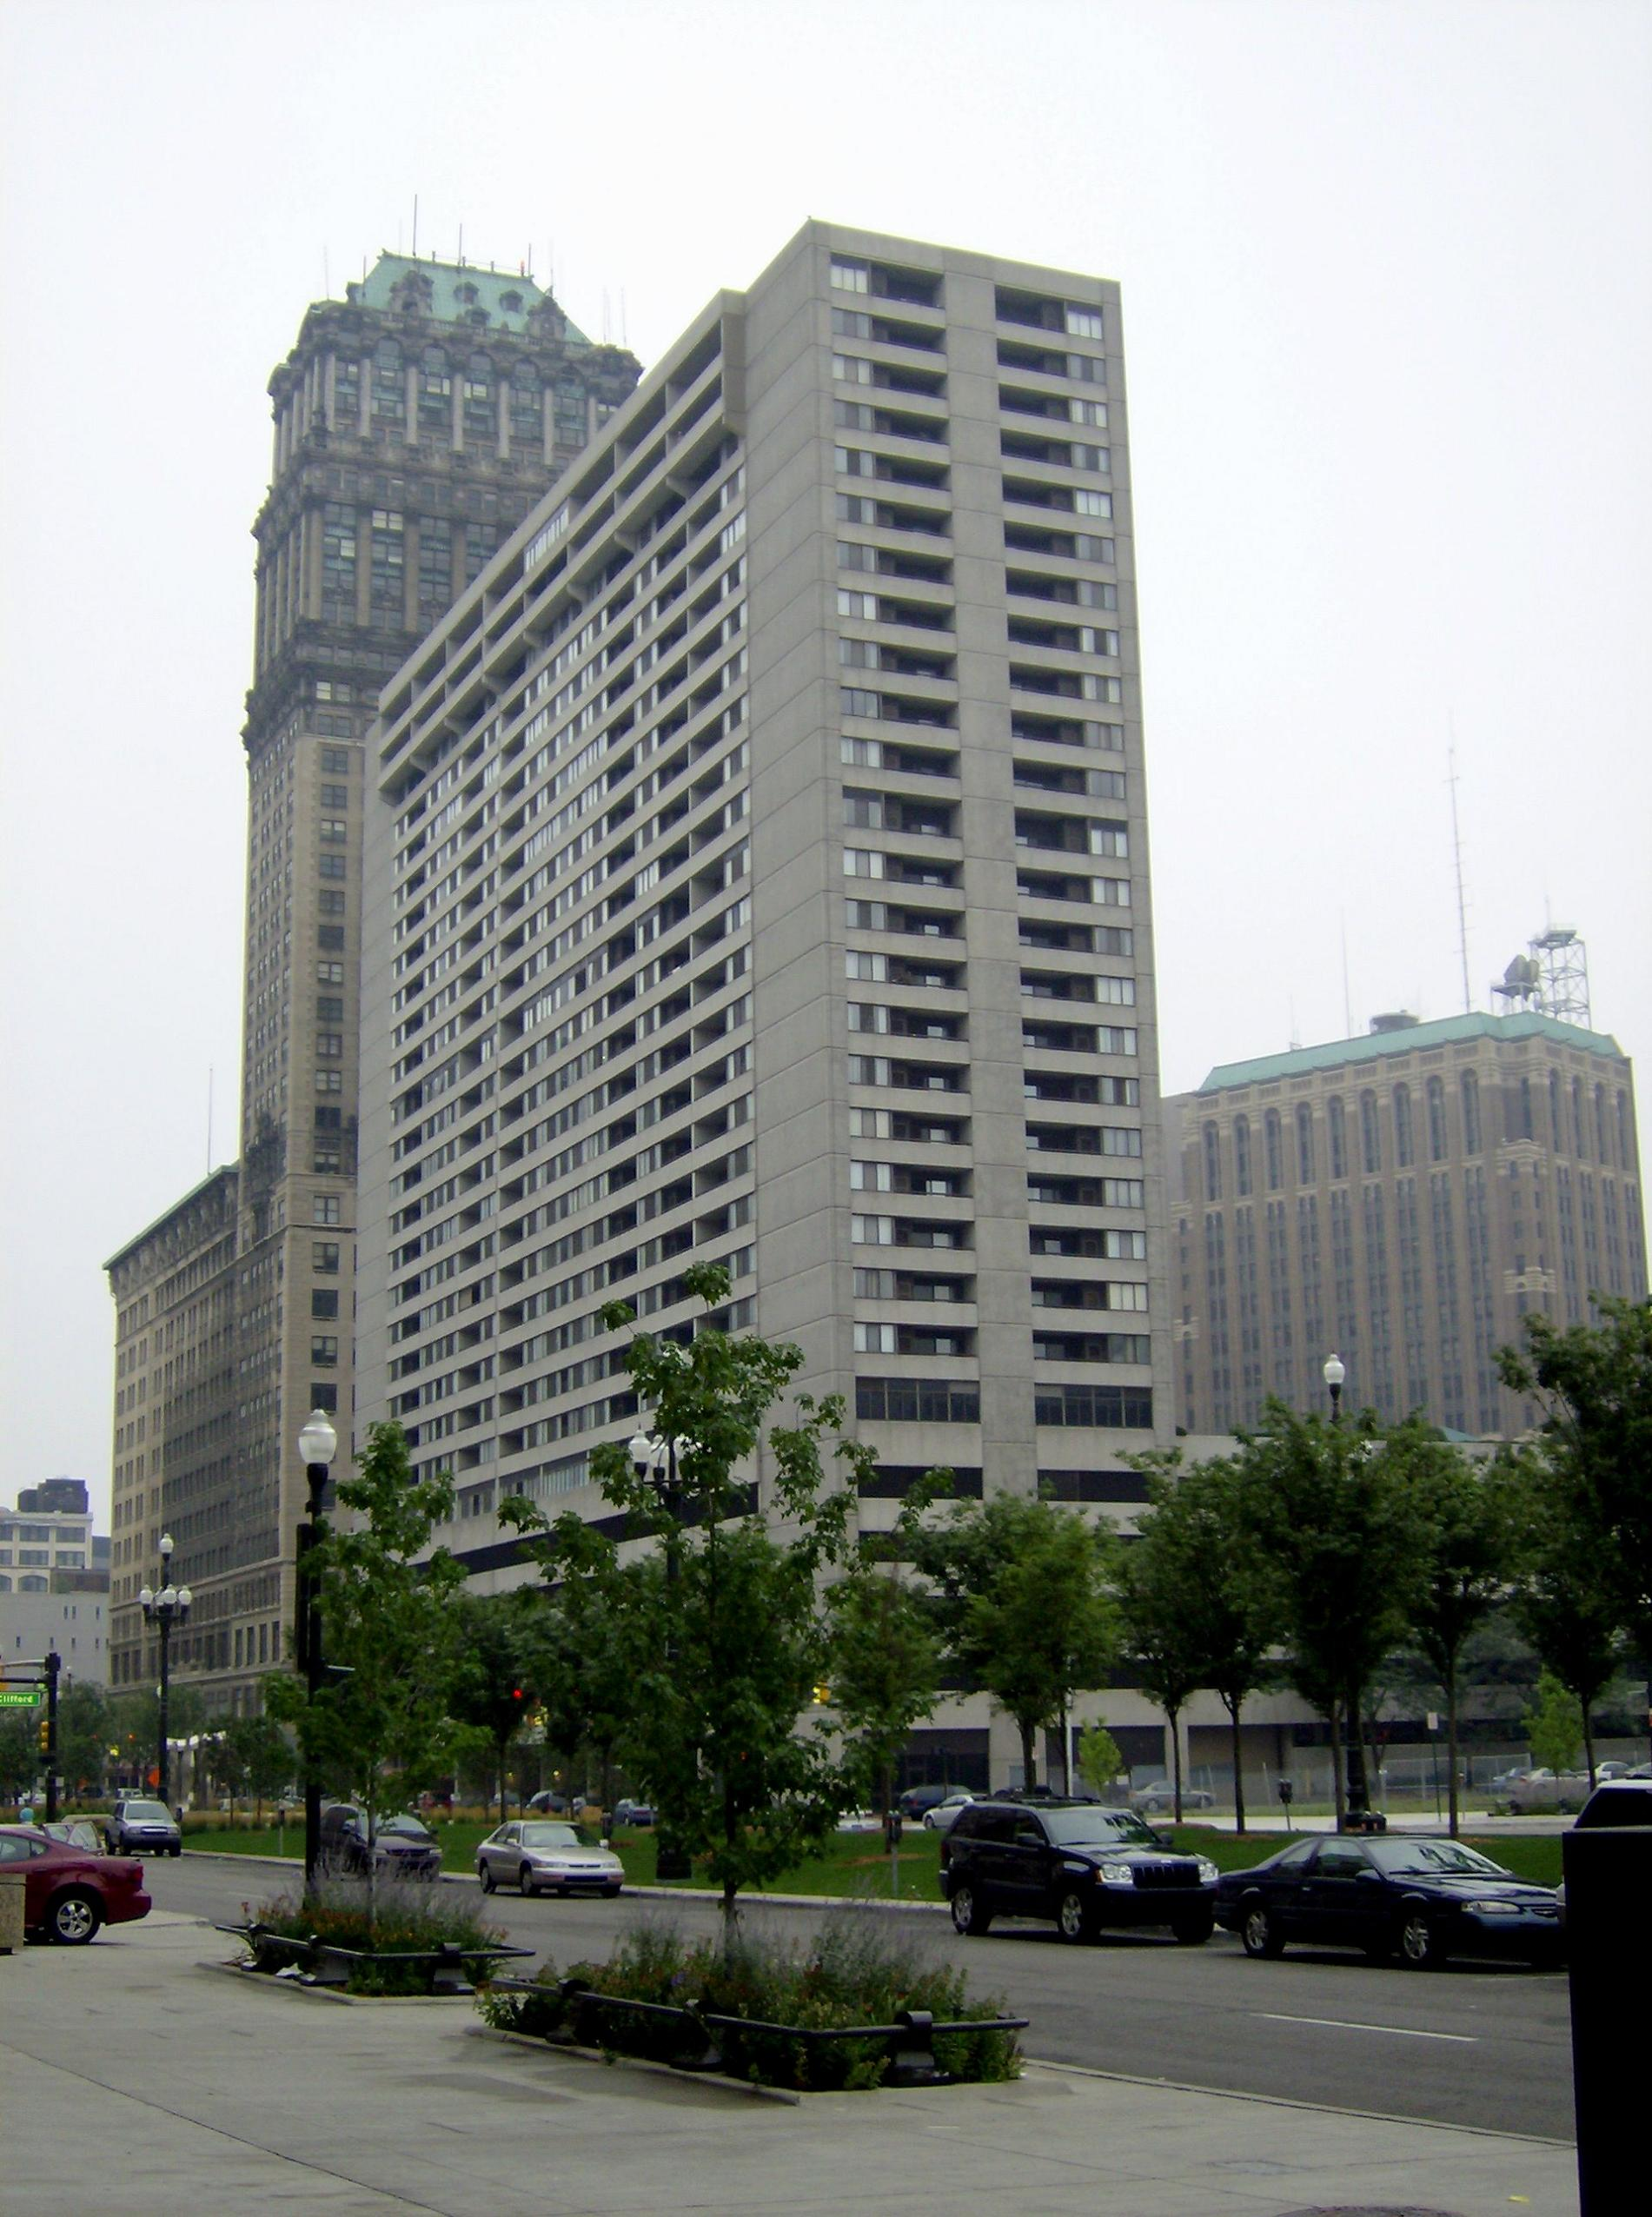 Detroit City Apartments - Wikipedia